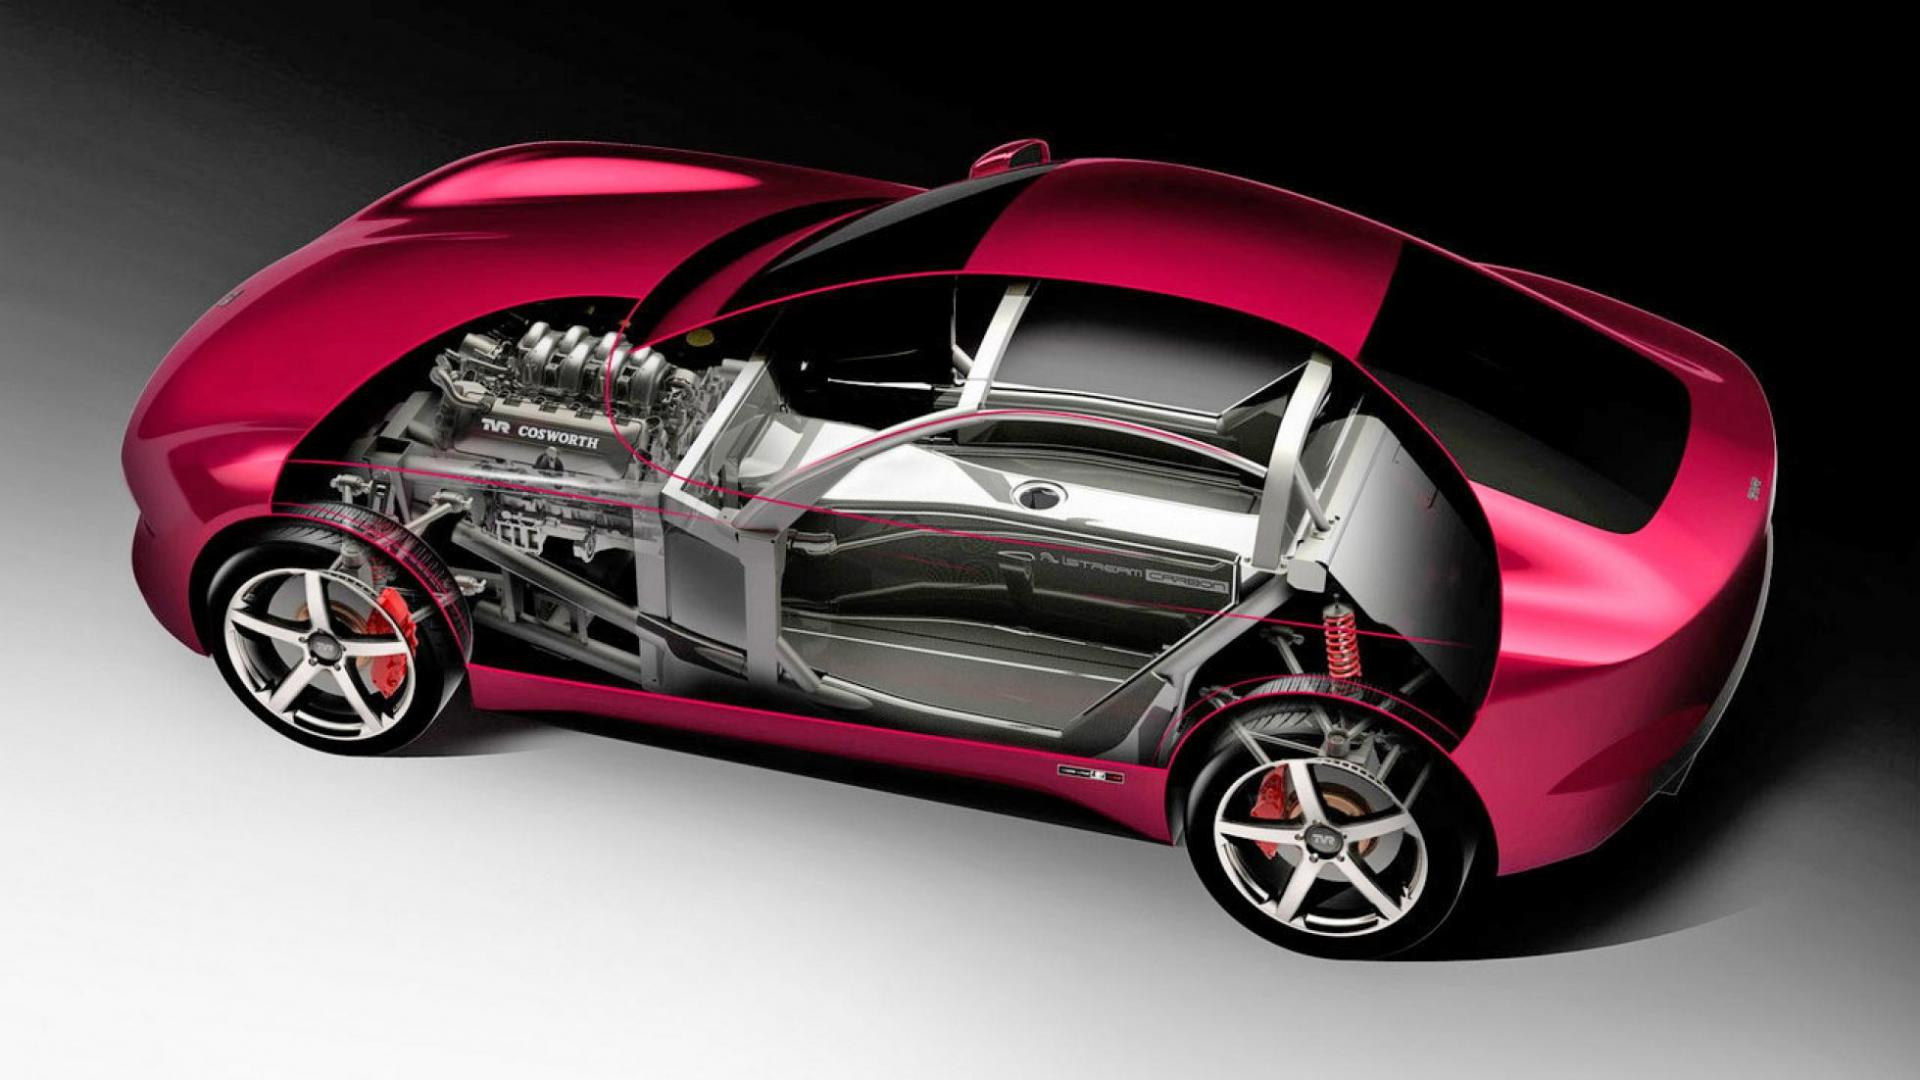 tvr-chassis